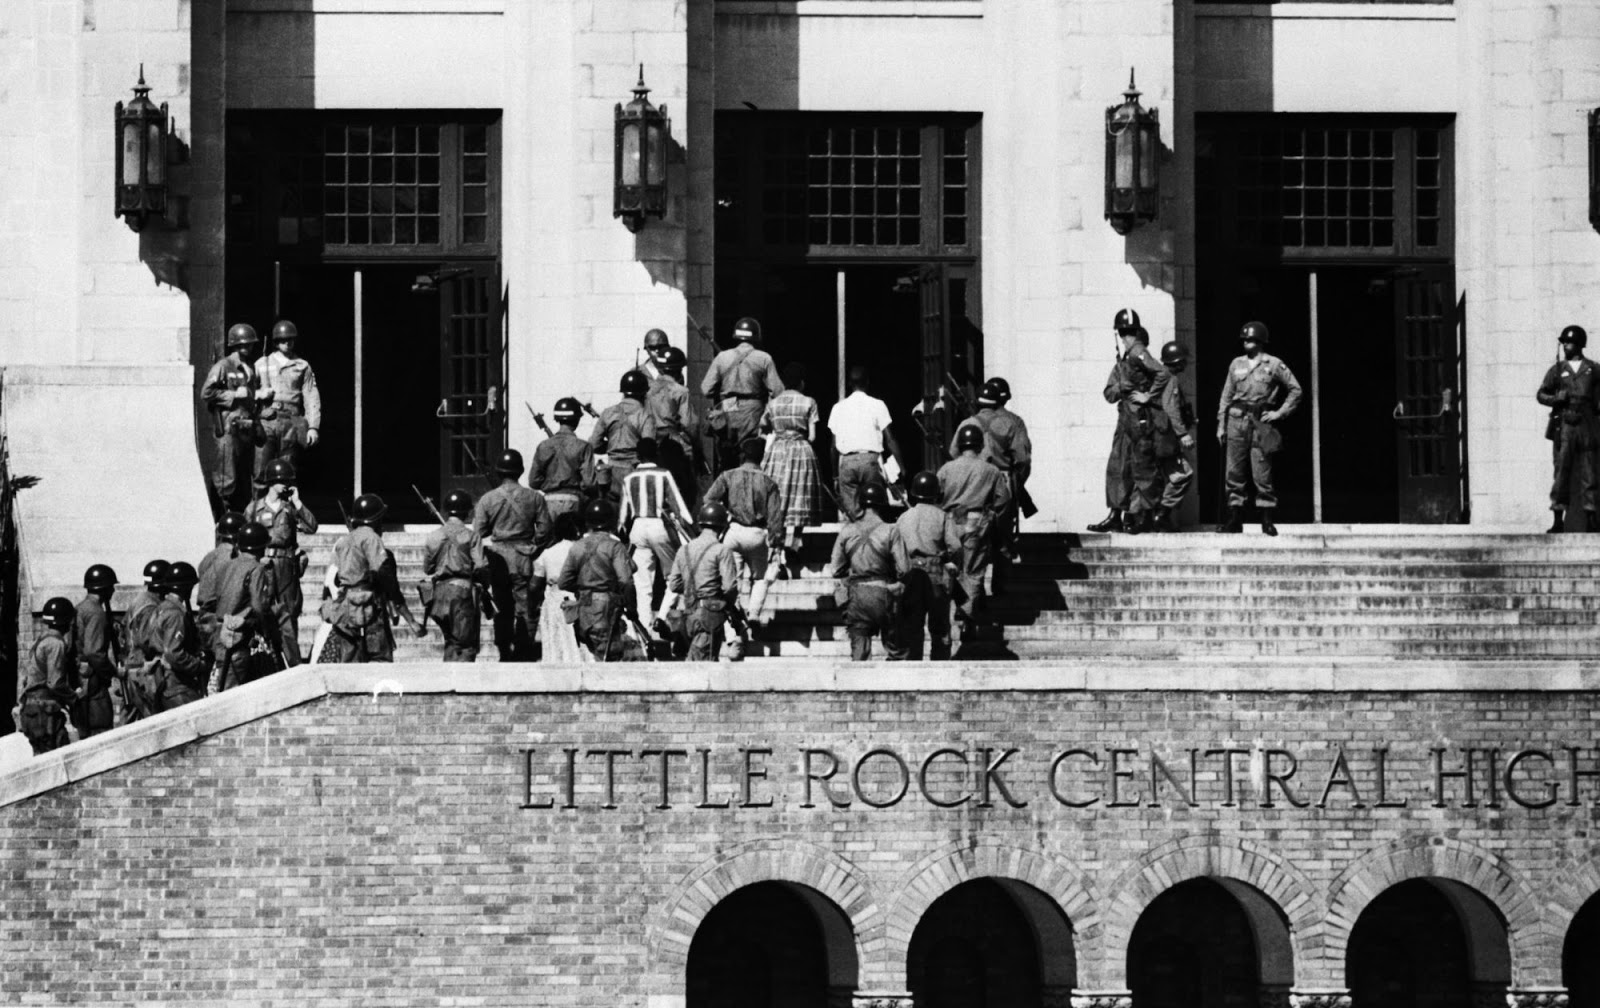 Segregación Racial. Little rock central